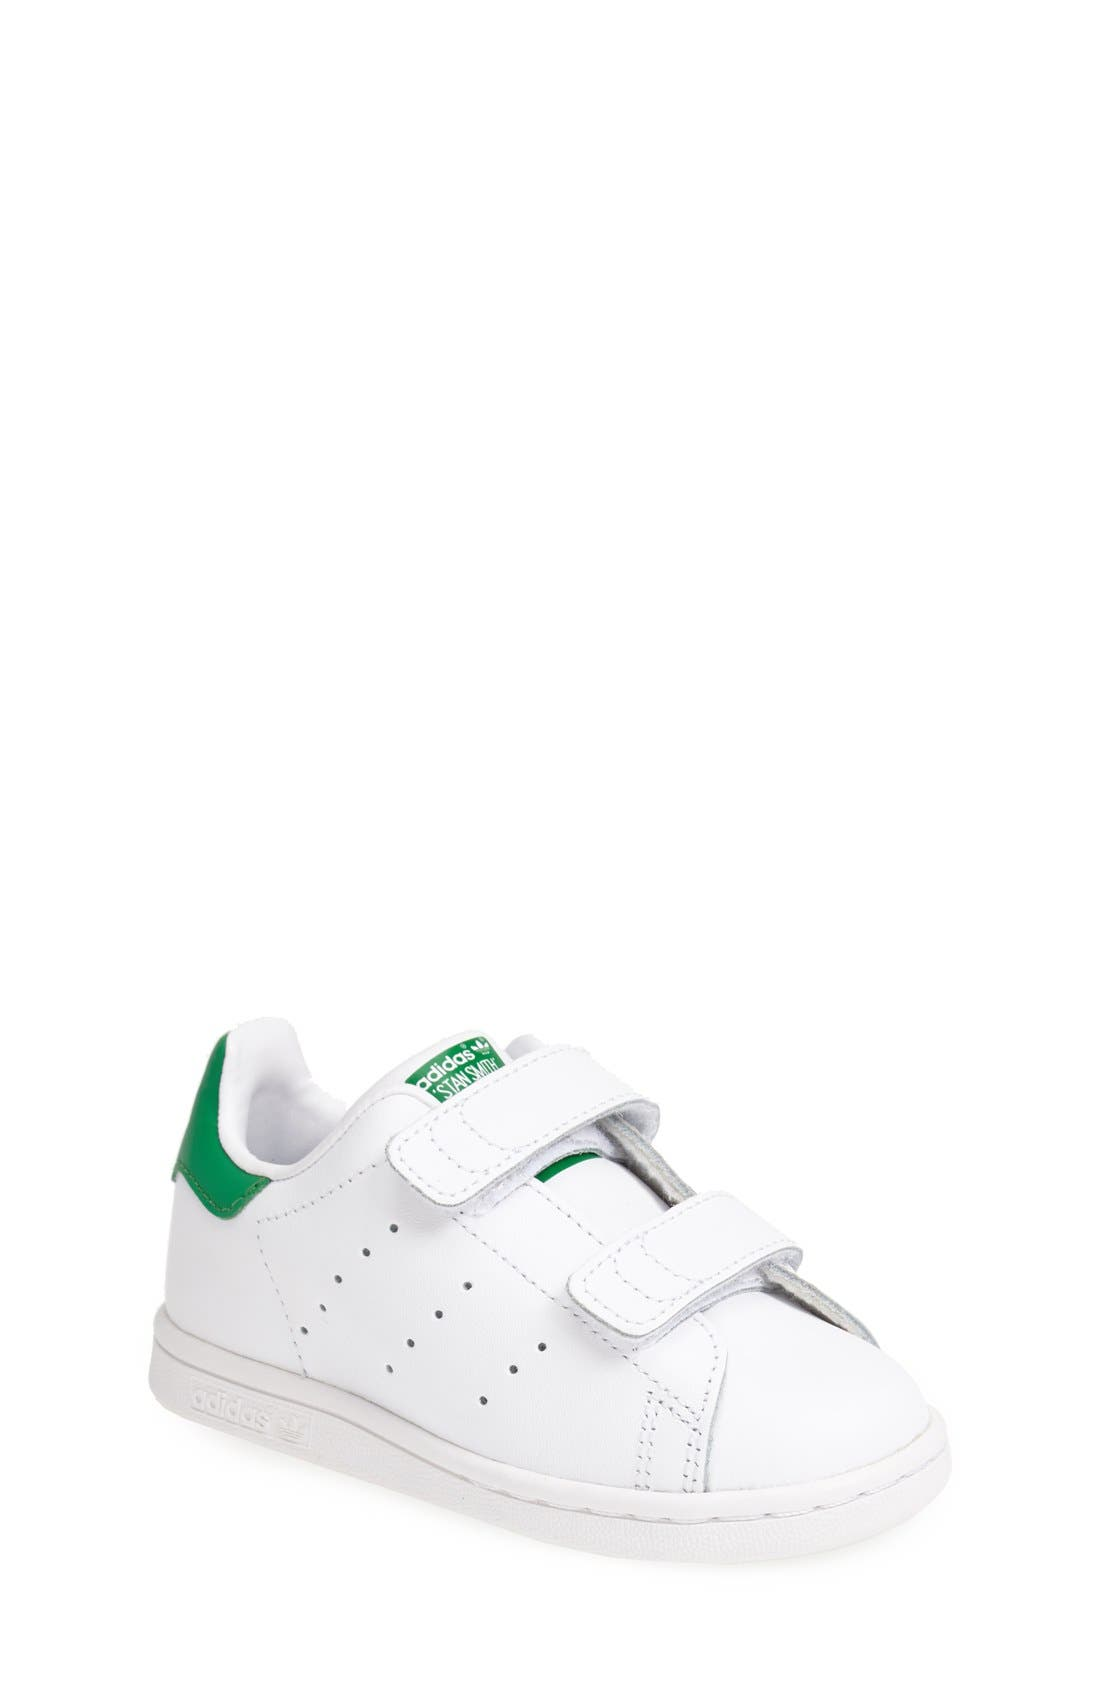 Main Image - adidas \u0027Stan Smith\u0027 Leather Sneaker (Baby, Walker \u0026 Toddler